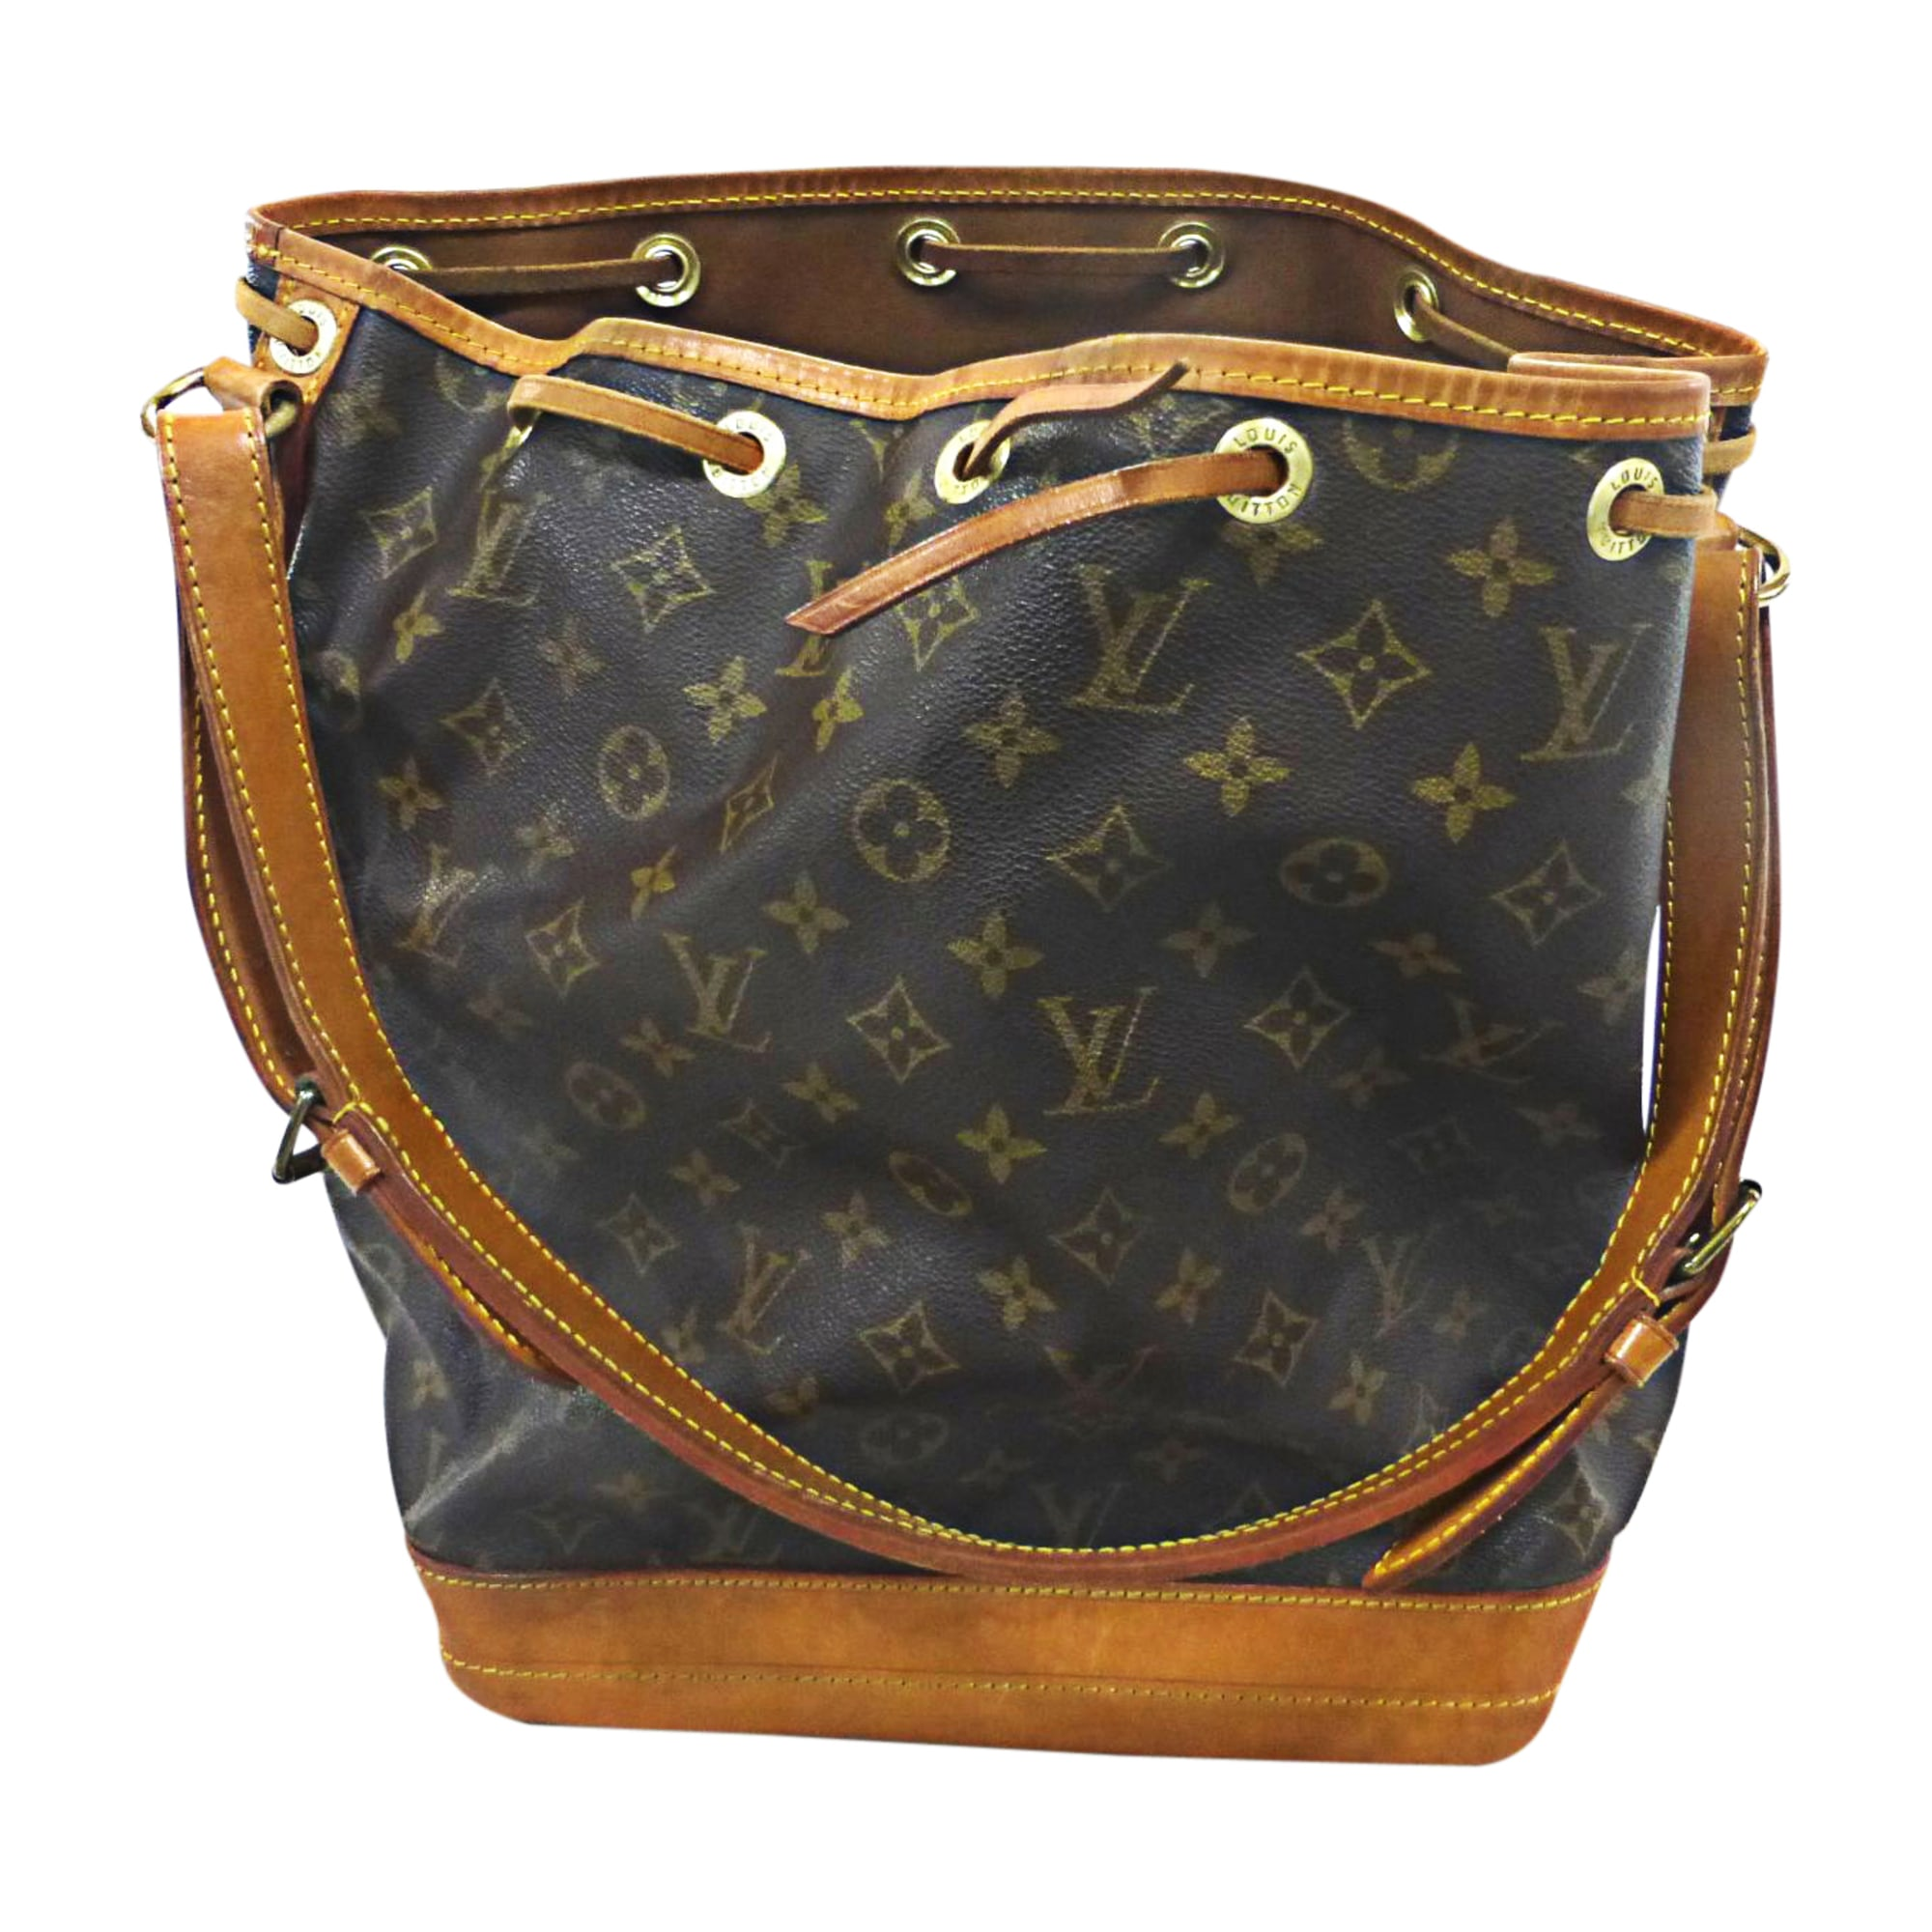 Sac à main en cuir LOUIS VUITTON no marron vendu par Bibag - 7849694 247b503bb32